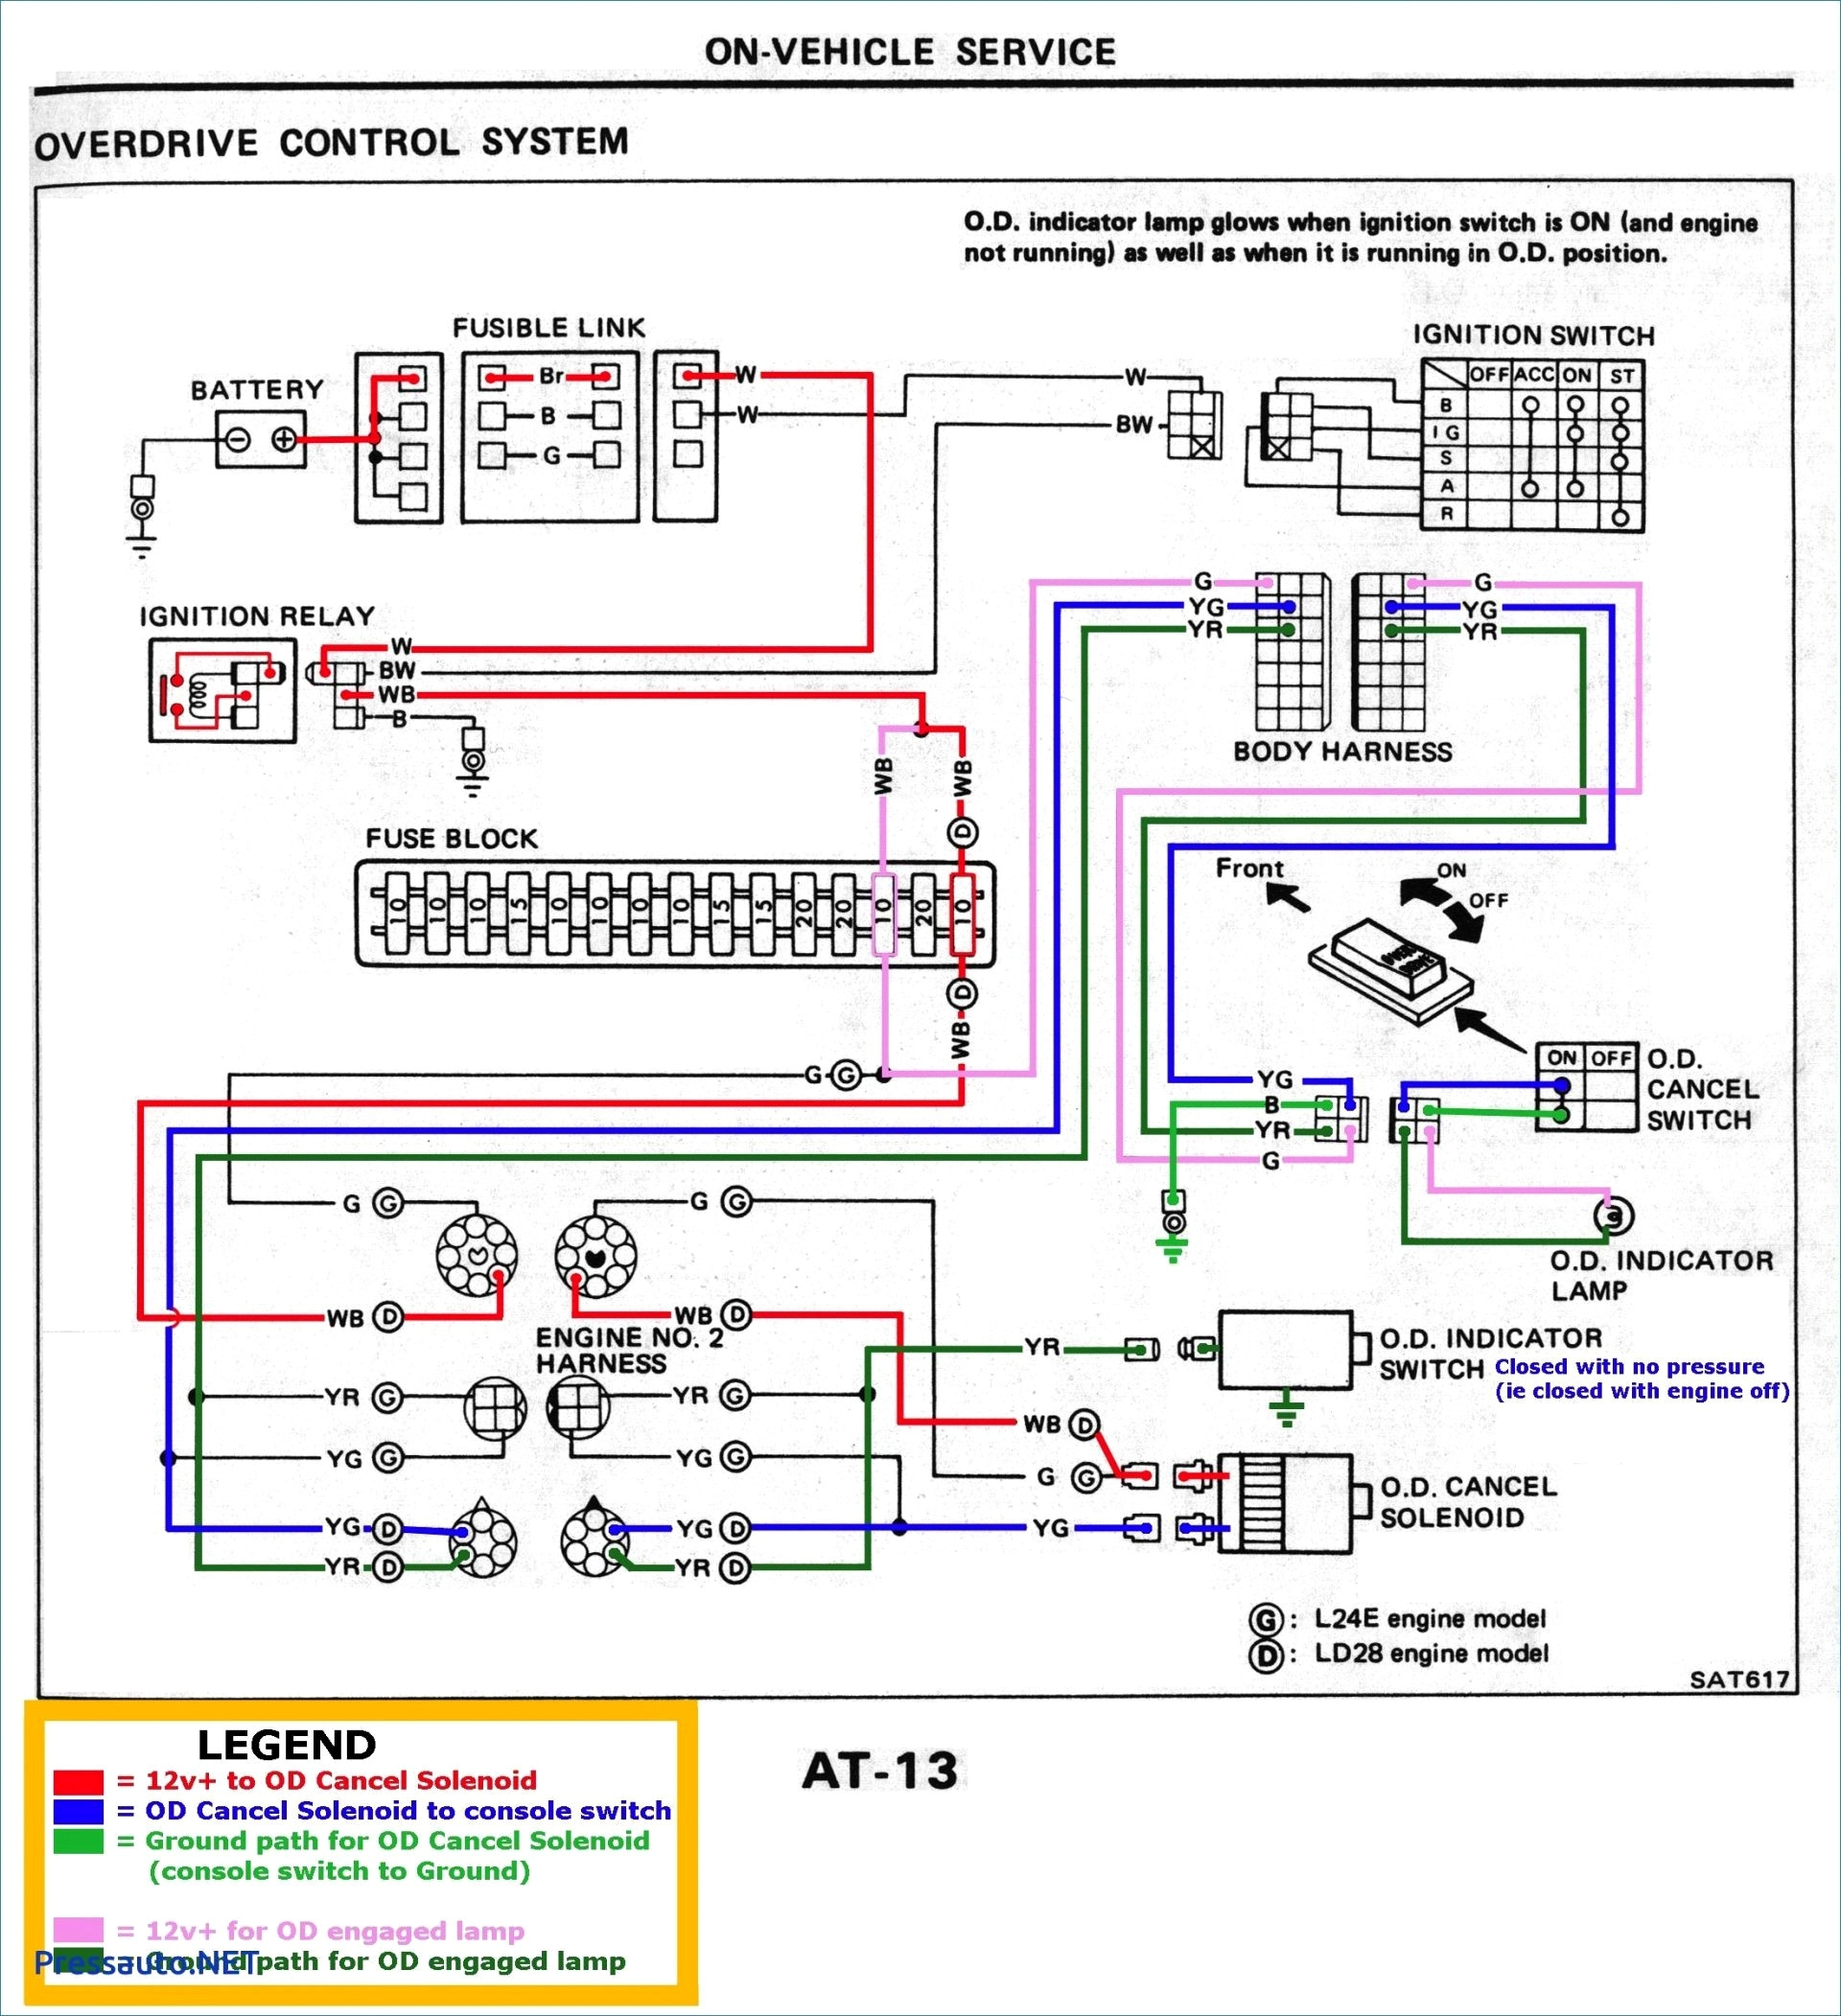 chevy trailer wiring diagram Collection-Chevy 7 Pin Trailer Wiring Diagram sources 19-r